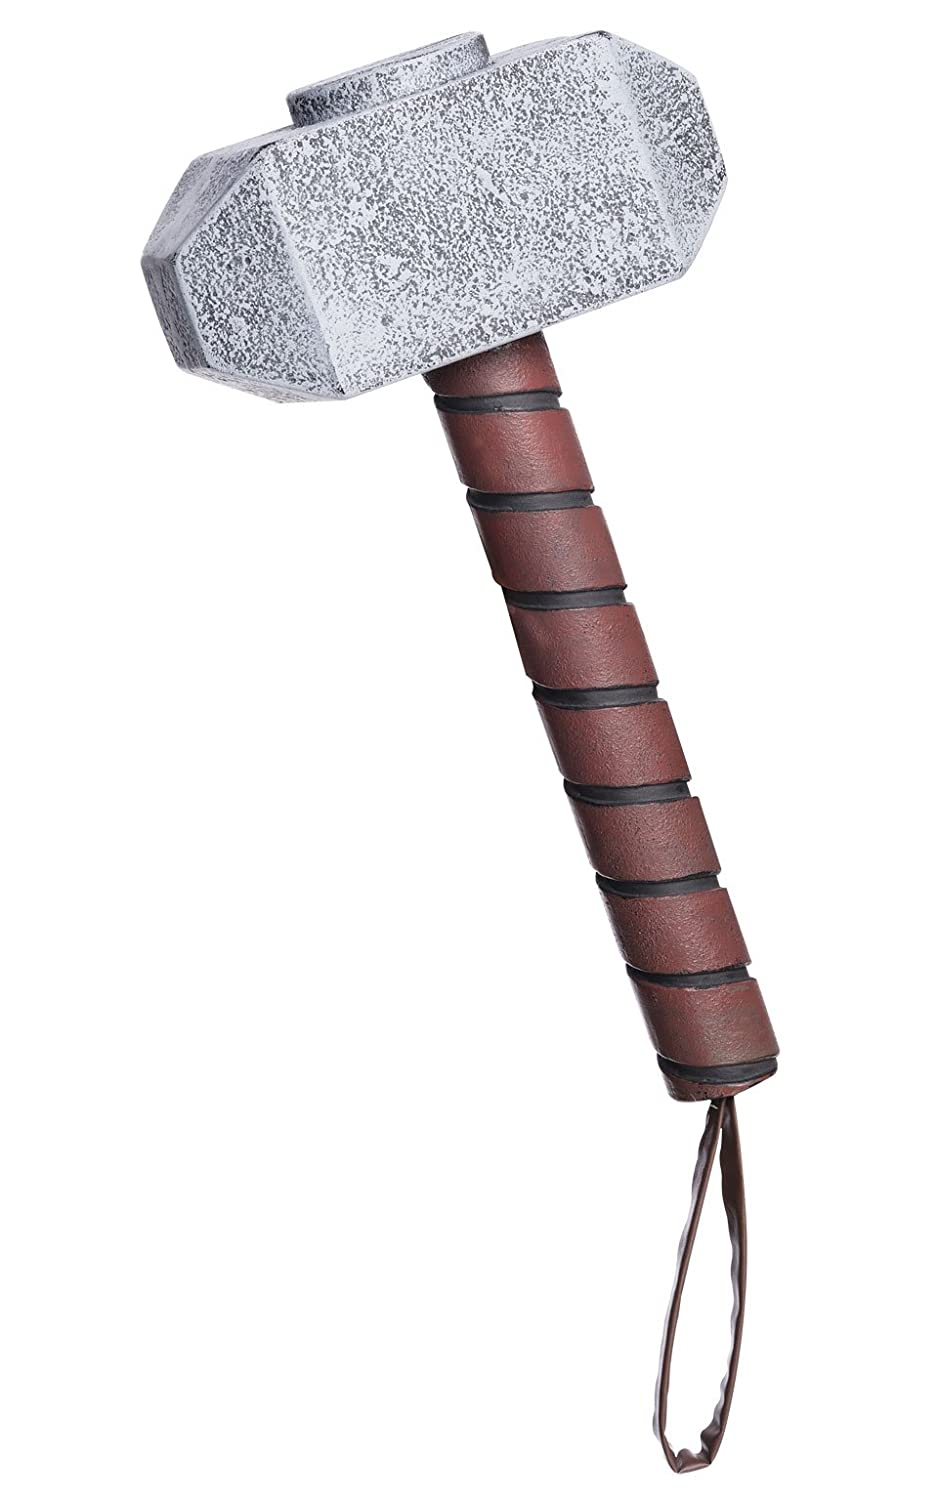 Marvel Rubie's Costume Men's Universe Thor Hammer Costume Accessory Multi One Size Rubies Costumes - Apparel 35669